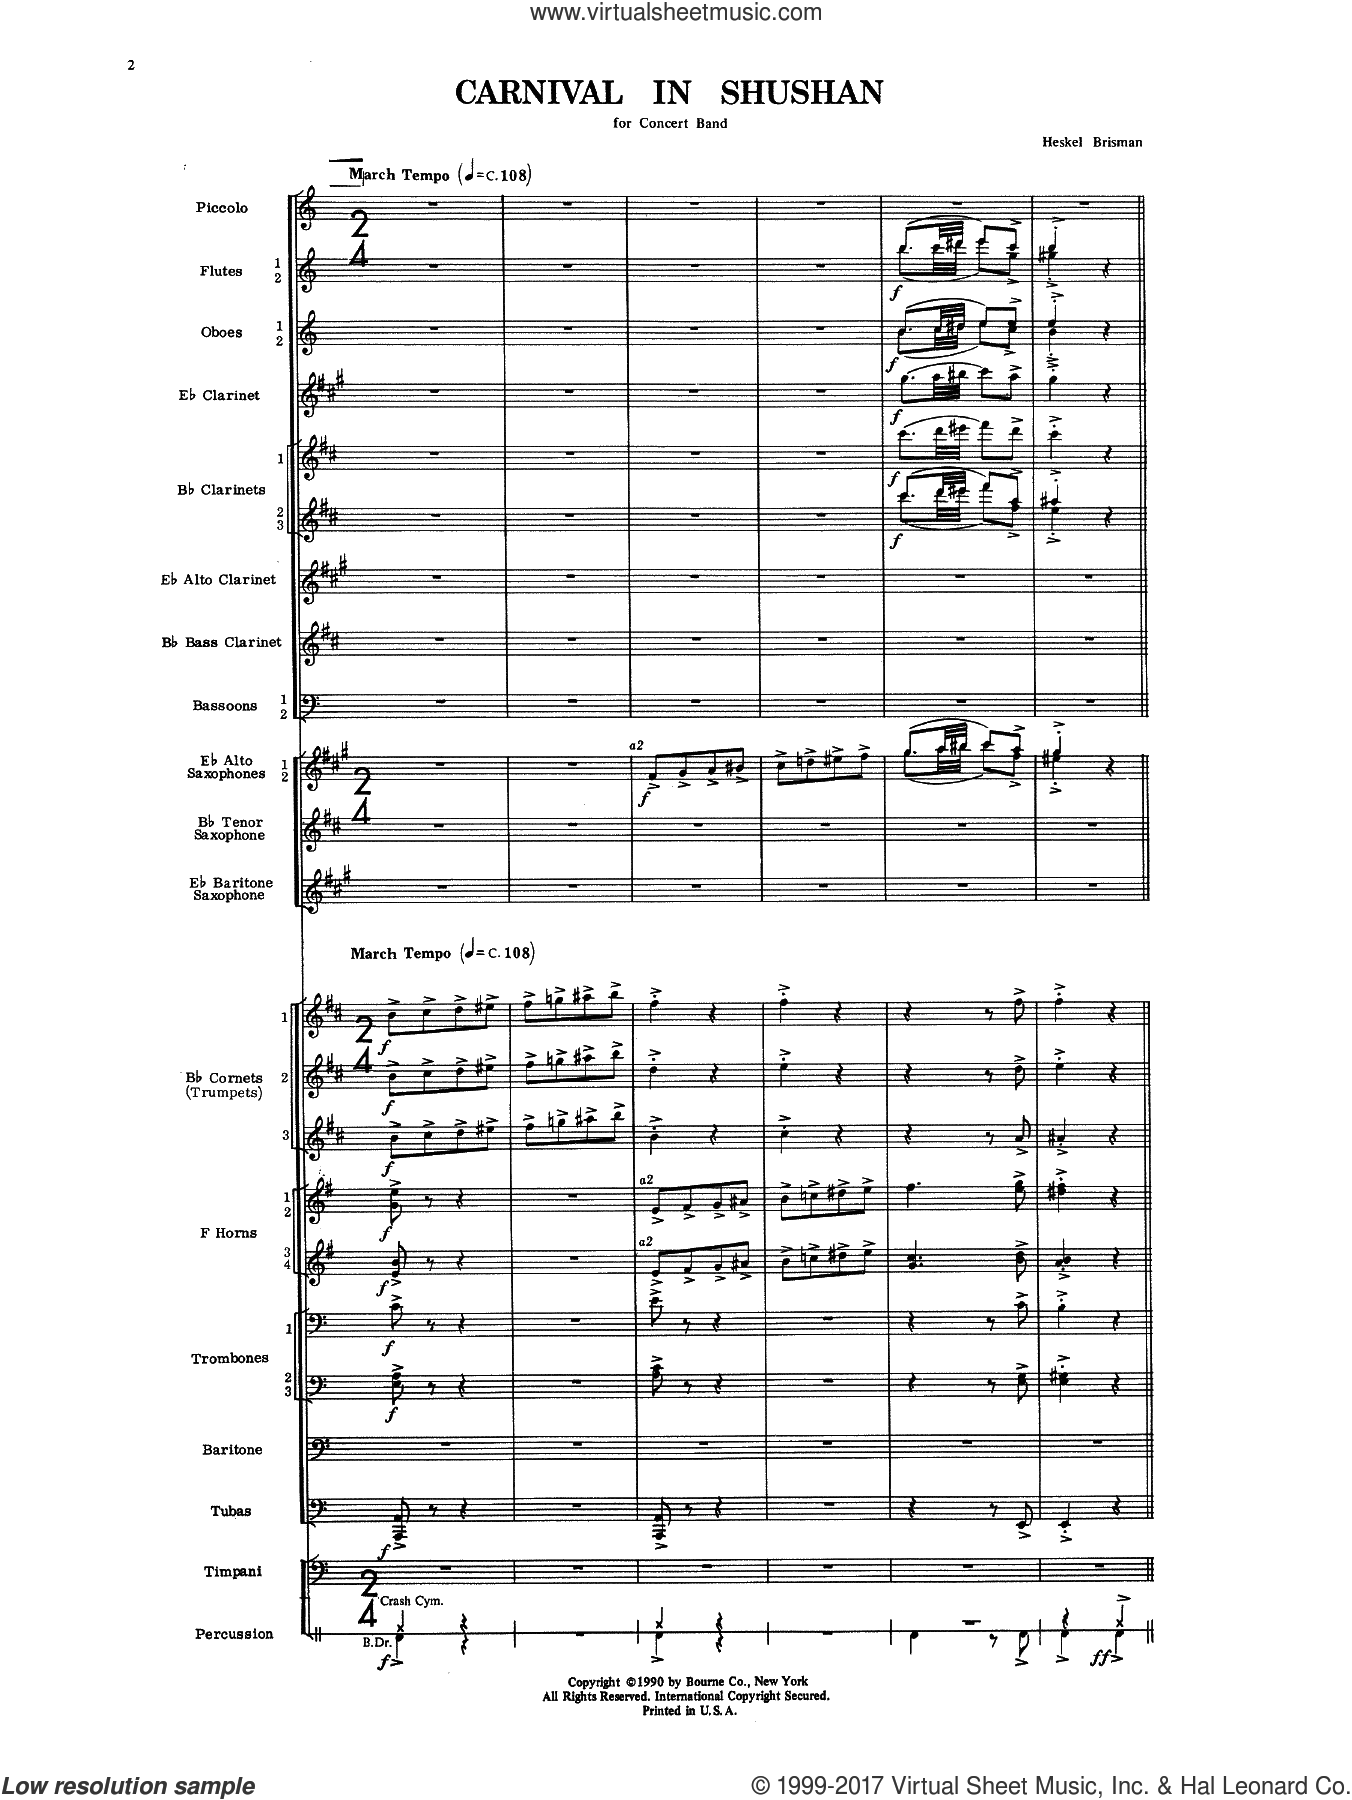 Carnival In Shushan (COMPLETE) sheet music for concert band by Heskel Brisman, intermediate skill level